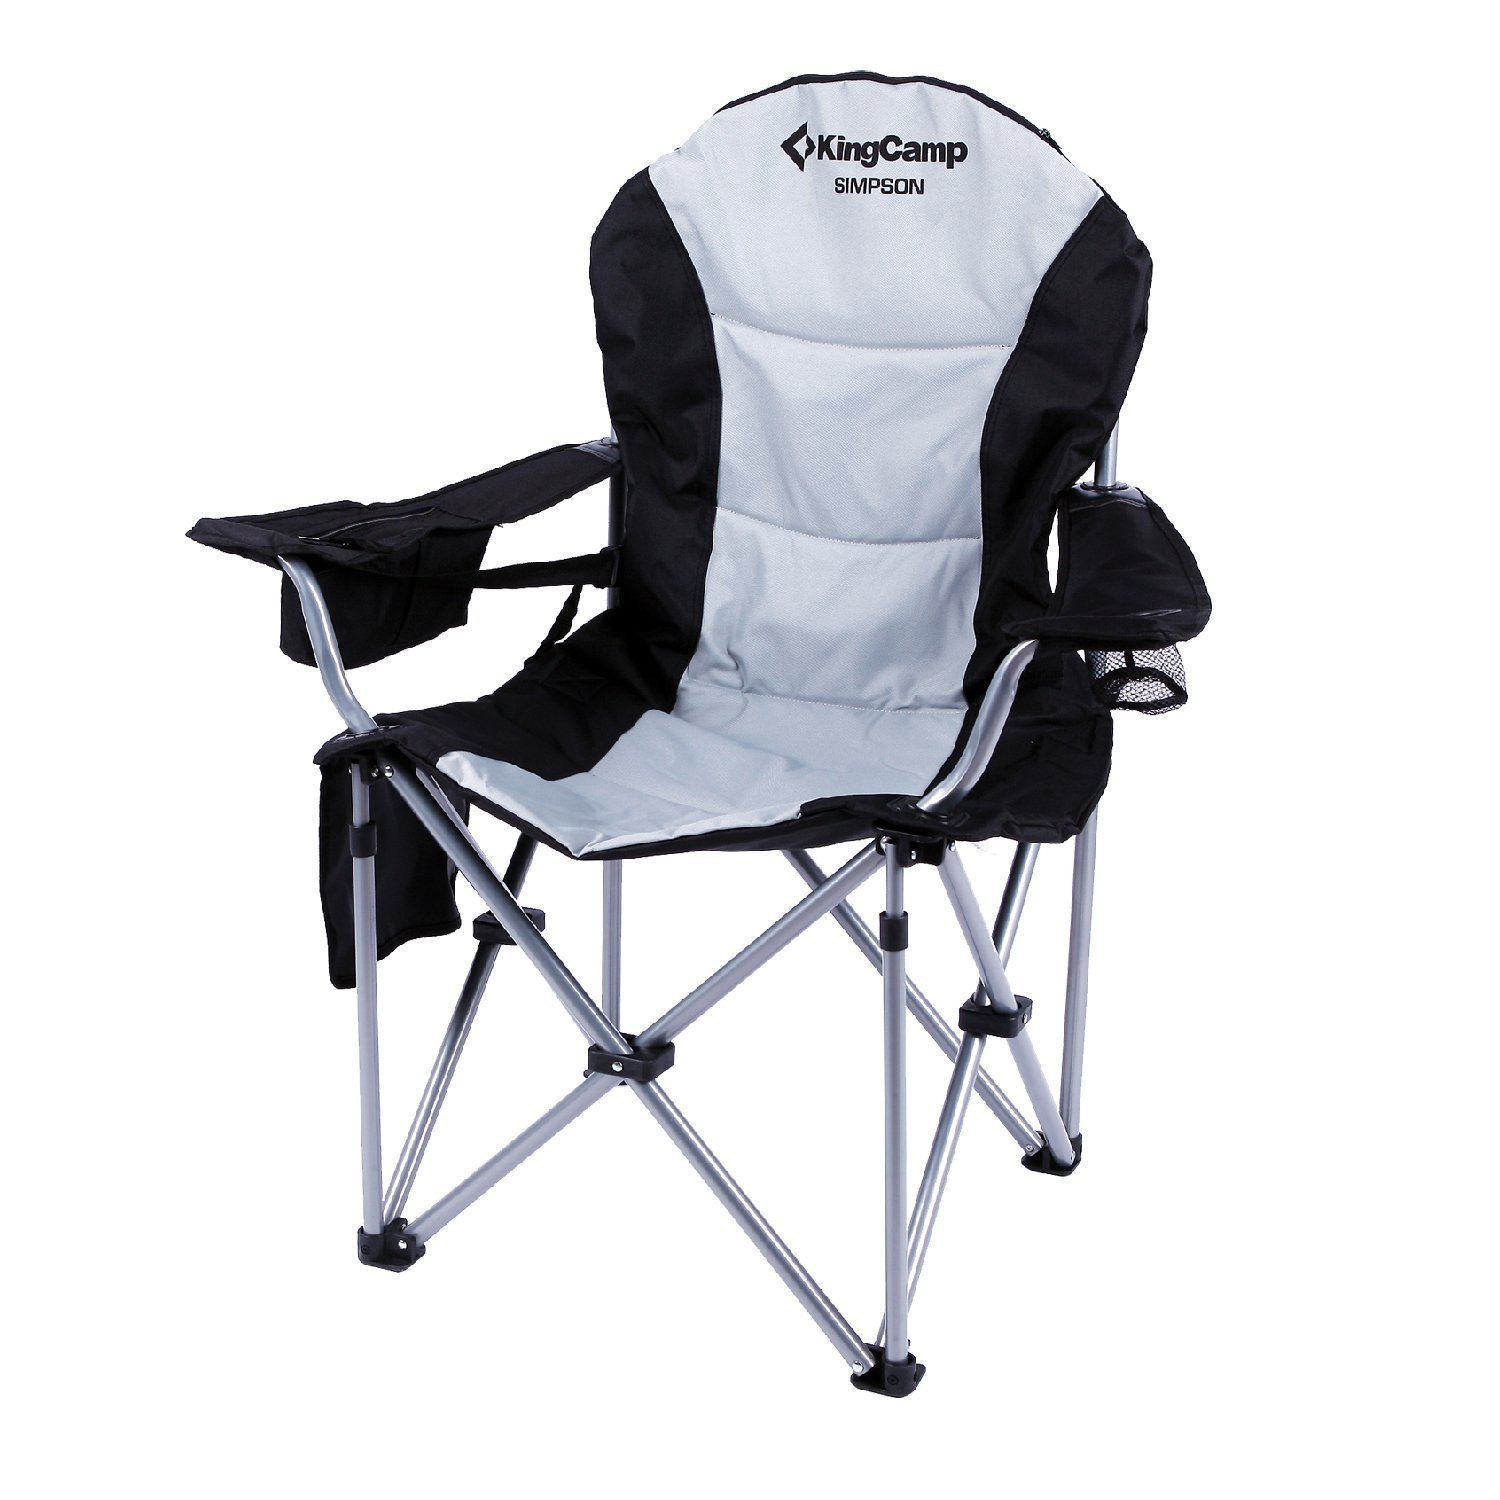 Lumbar Support Lightweight Portable Heavy Duty Folding Deluxe Large Size Camping Chair, Carry Bag Included